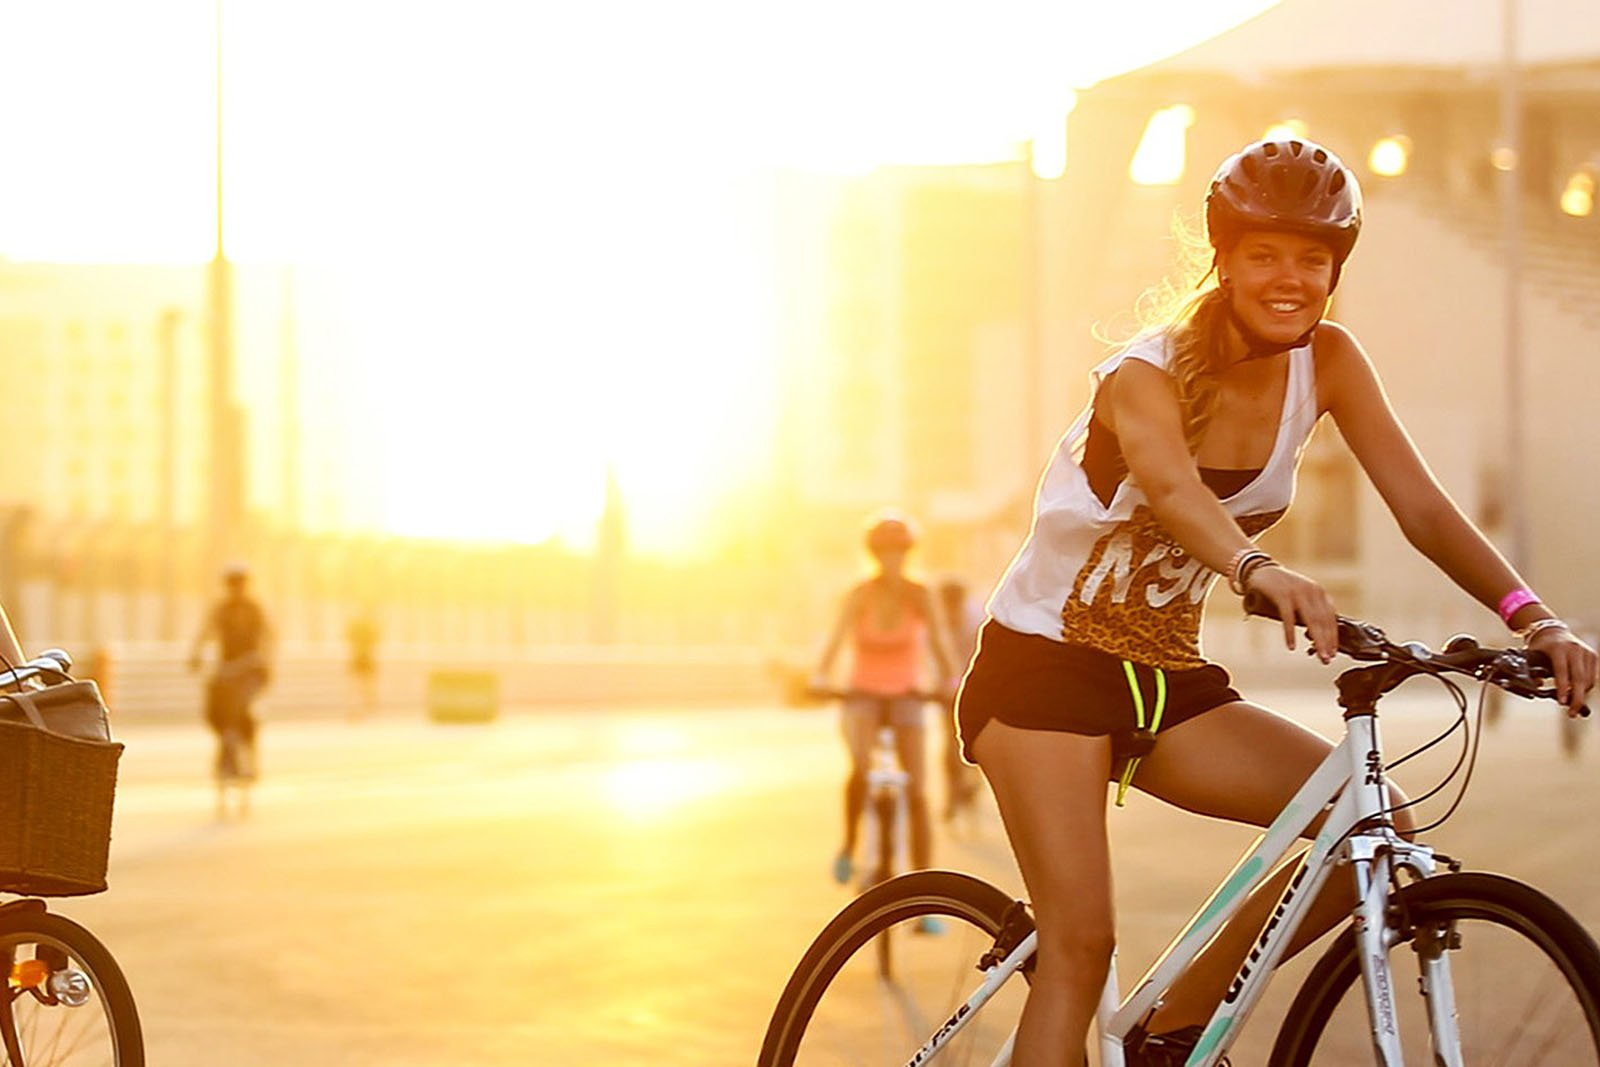 How to take a bike ride along the Corniche promenade in Abu Dhabi